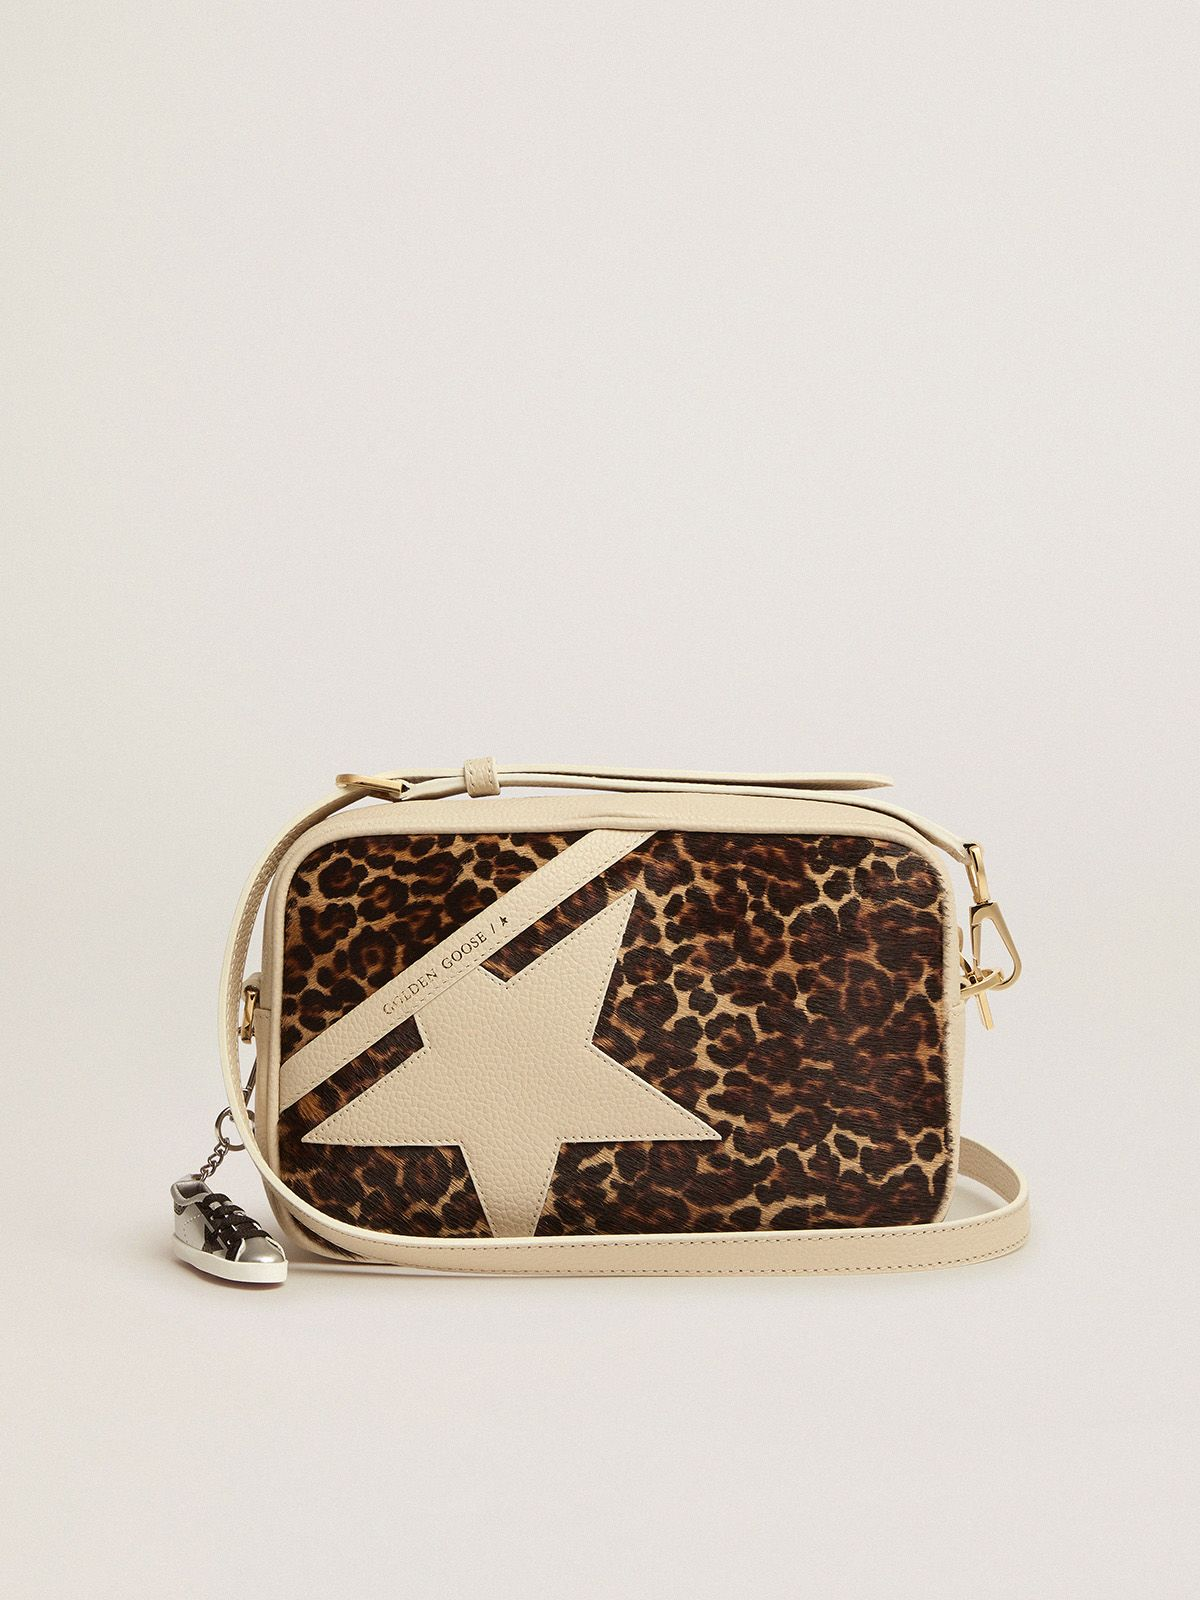 Off-white Star Bag with leopard-print pony skin insert